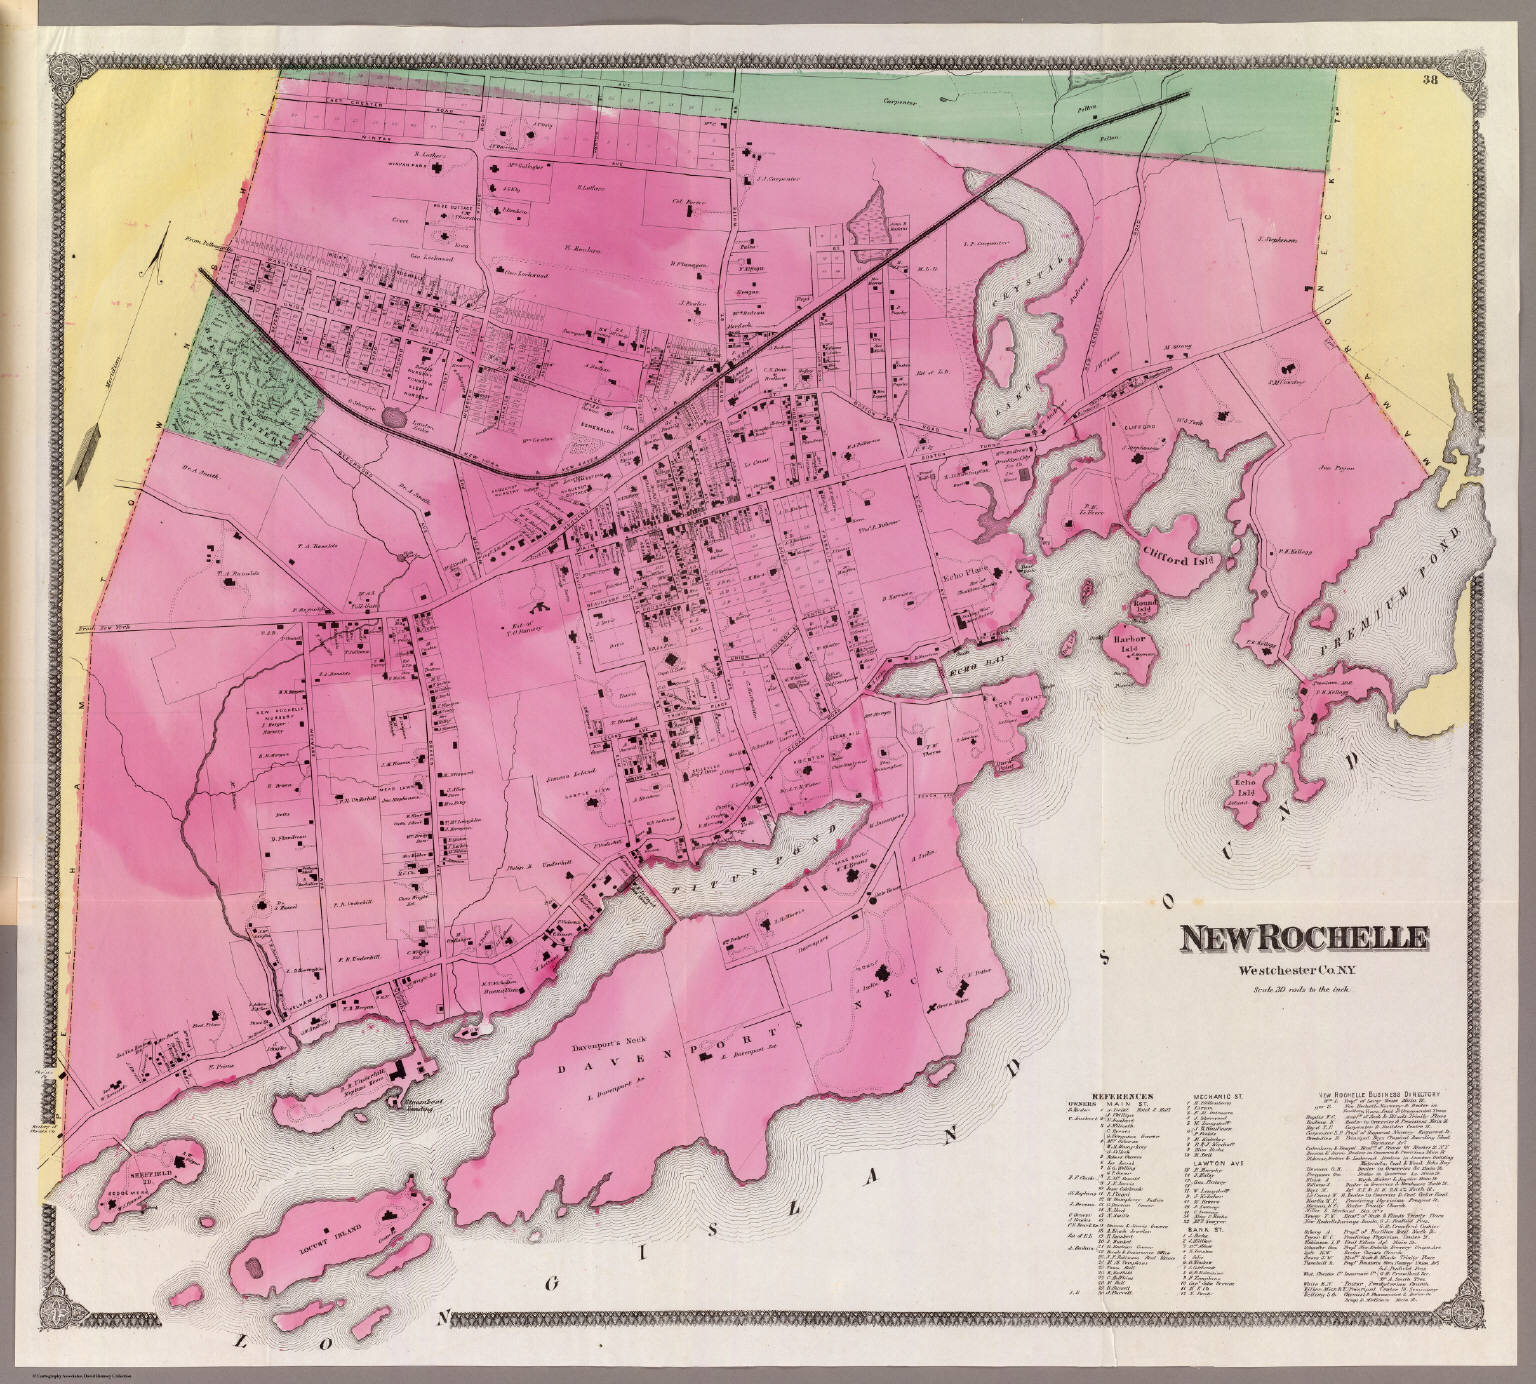 New Rochelle David Rumsey Historical Map Collection